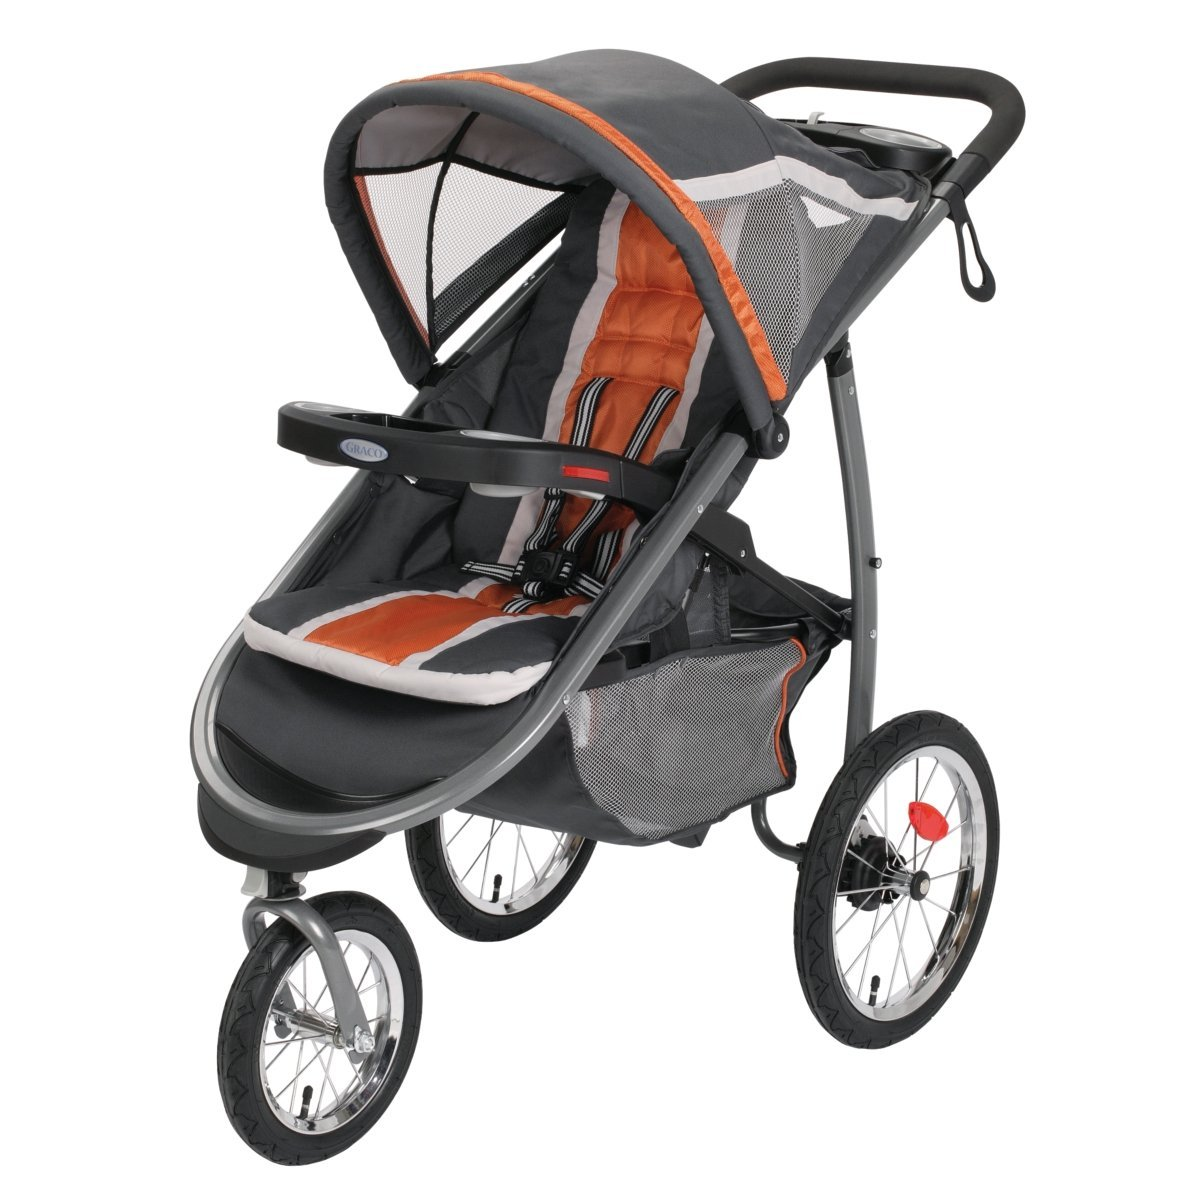 Best baby jogging strollers reviews graco fastaction fold jogger click connect stroller